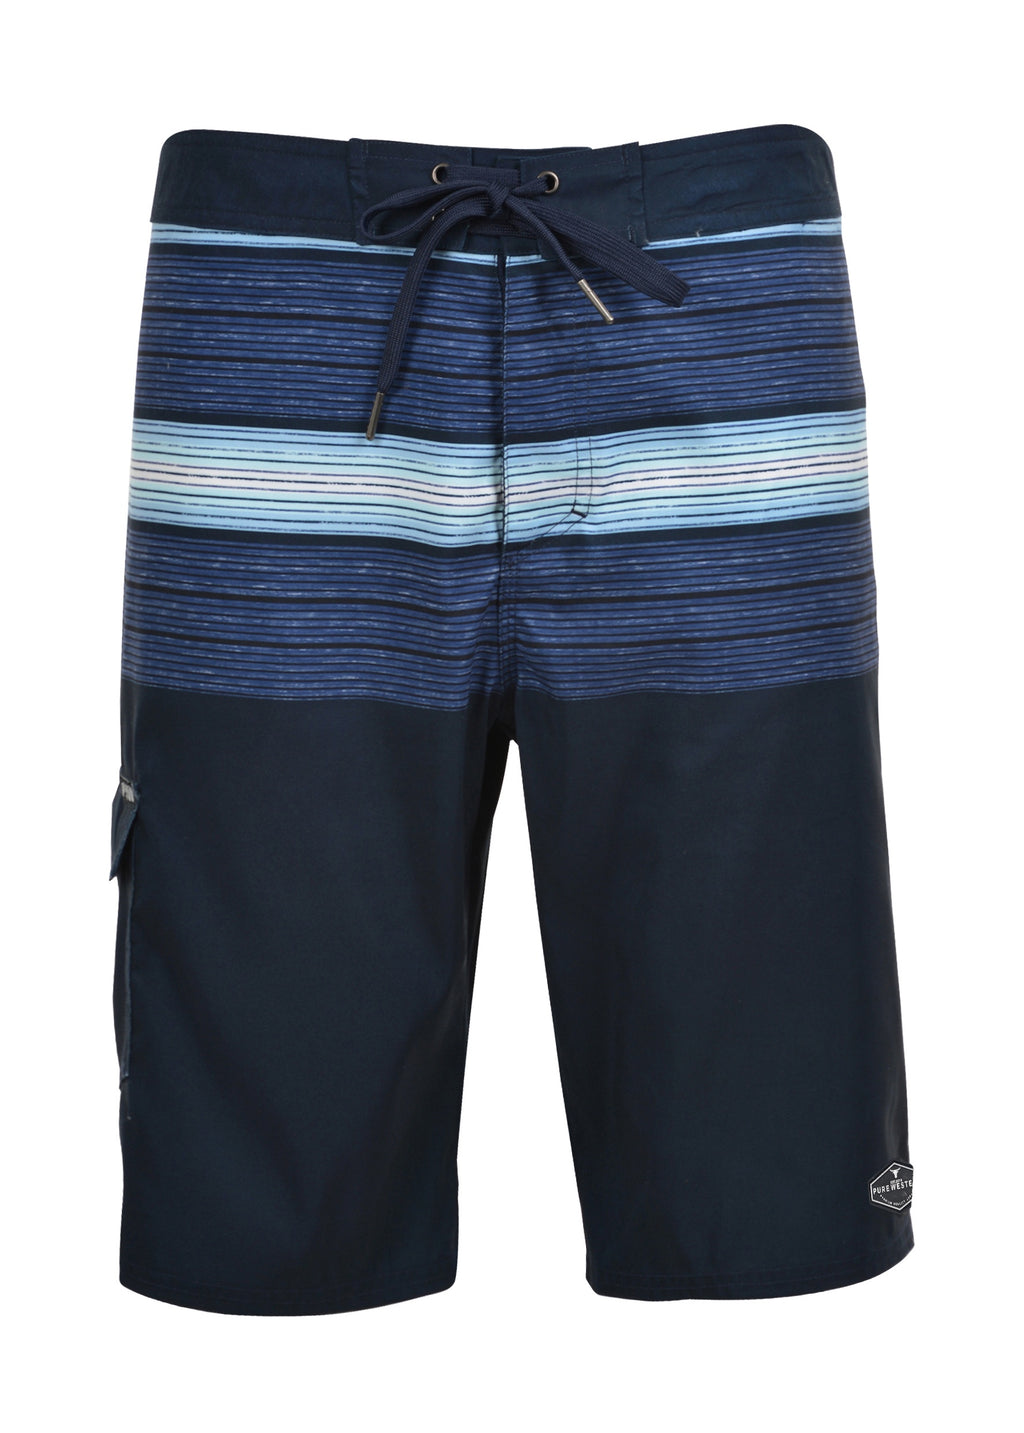 Mens Johnston Board Short (Navy)